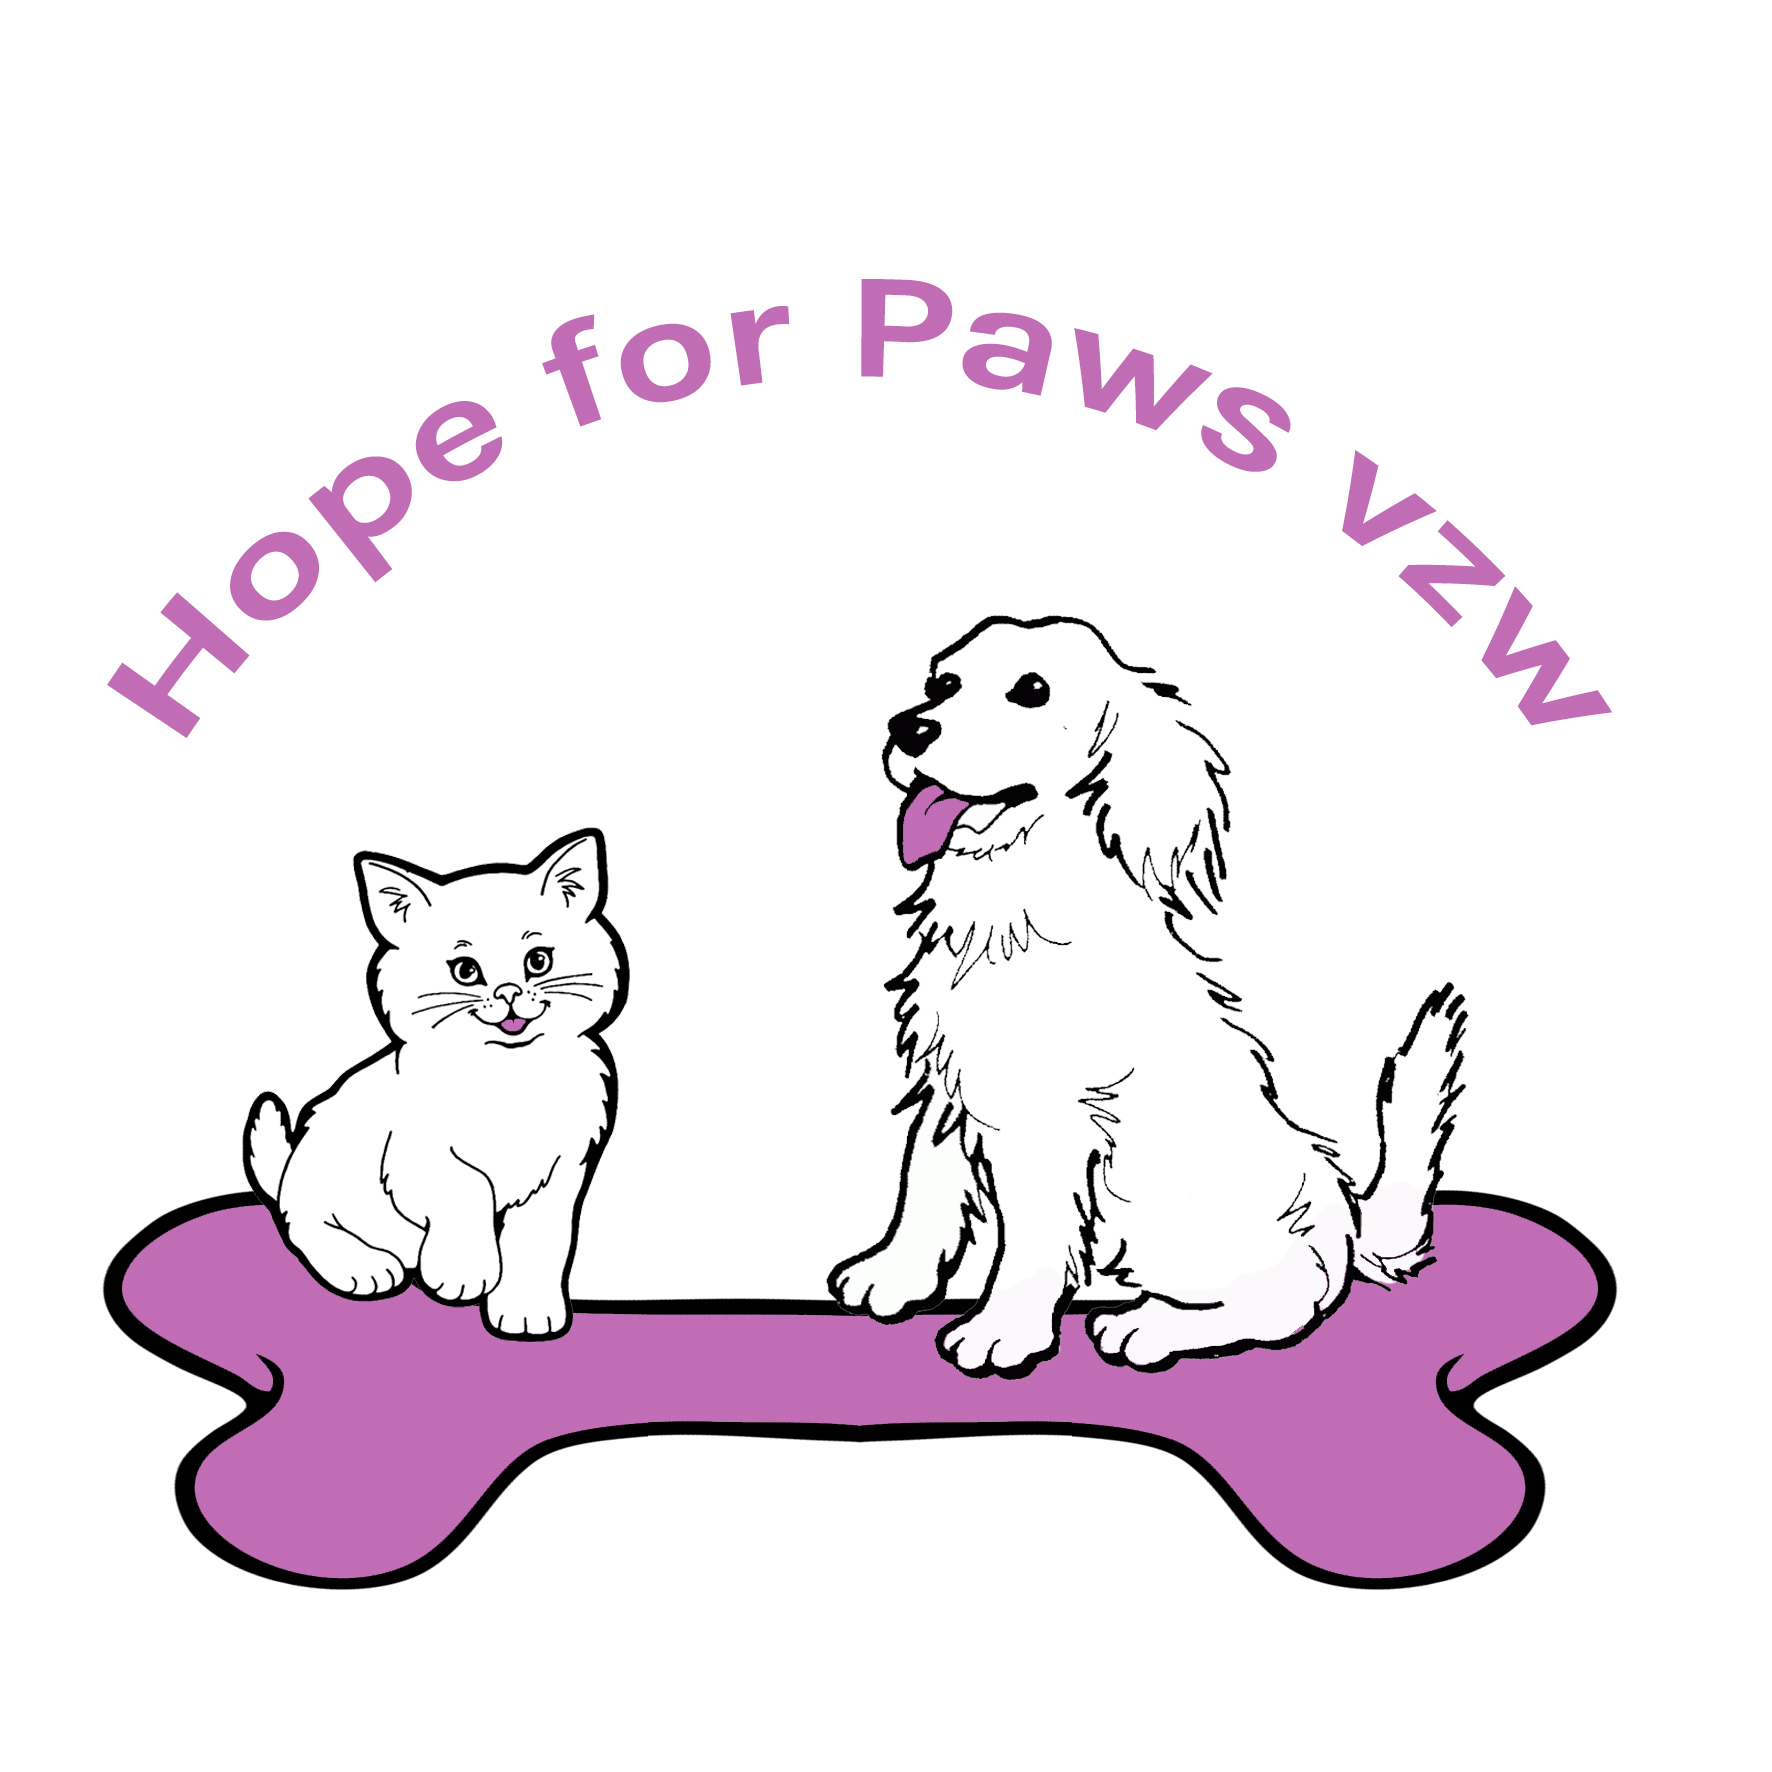 Hope for paws vzw